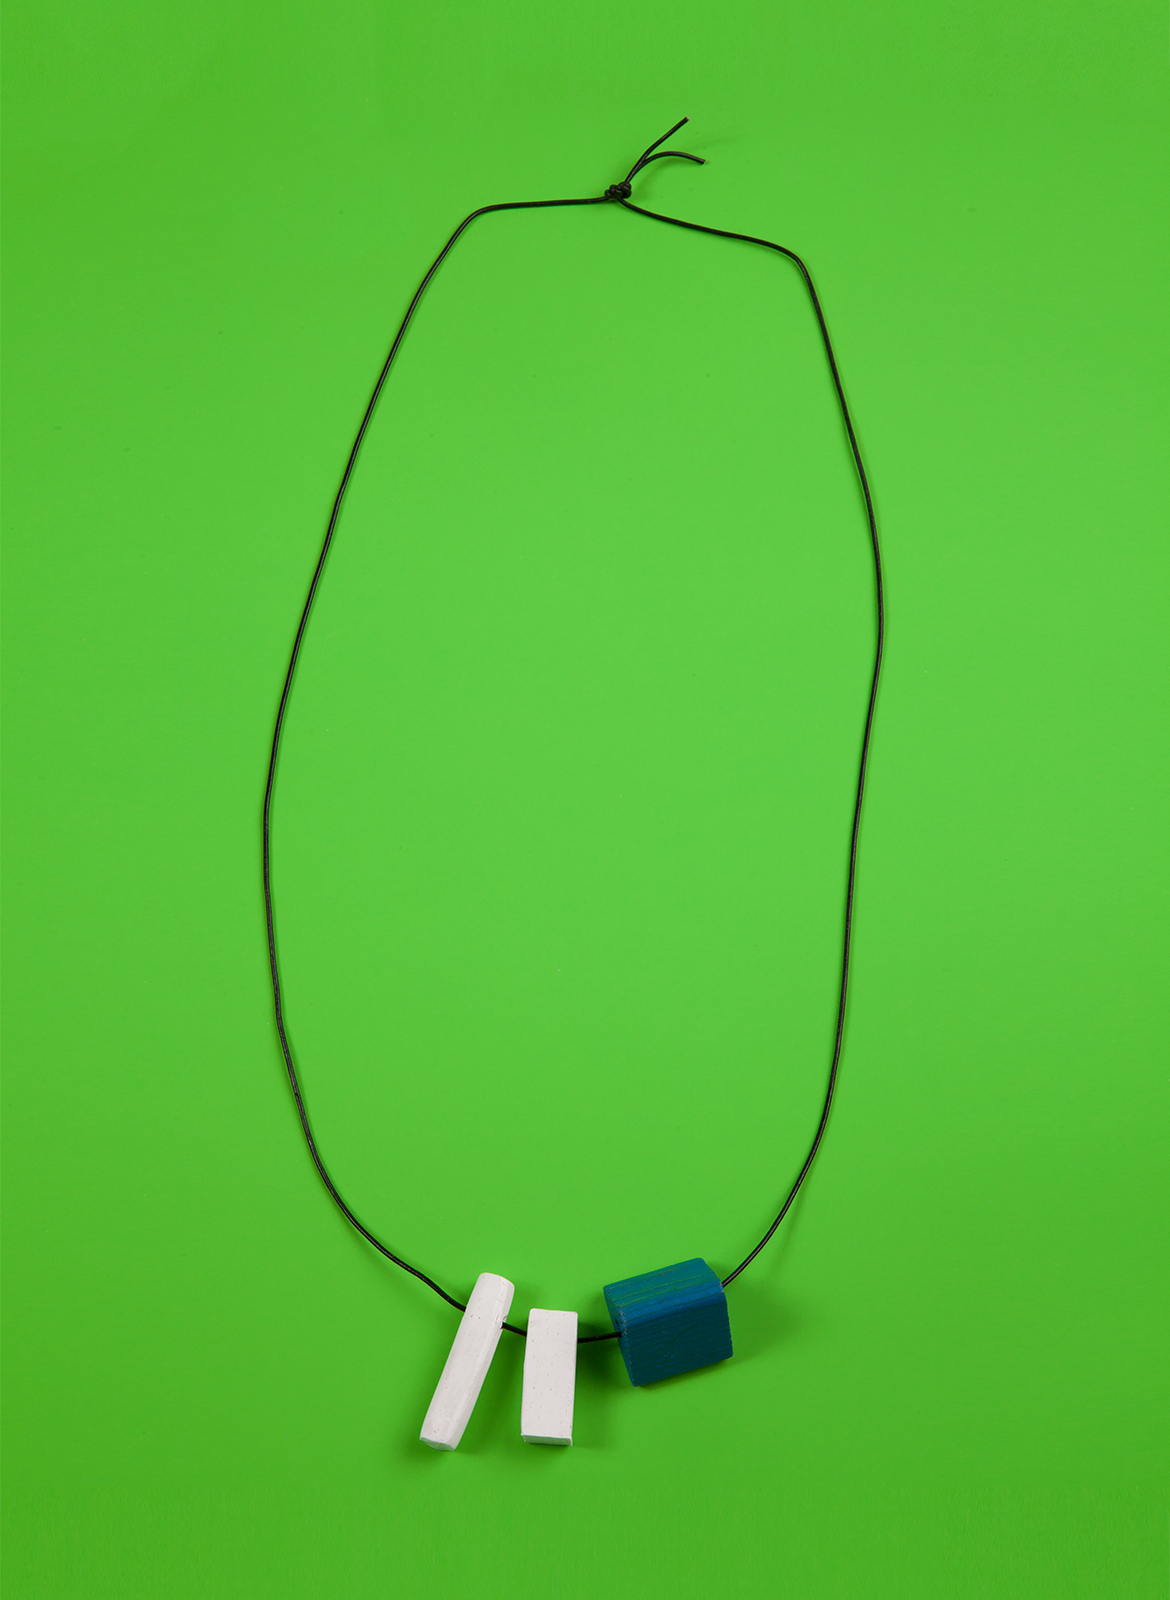 chadkouri-modularnecklace-greenbackground